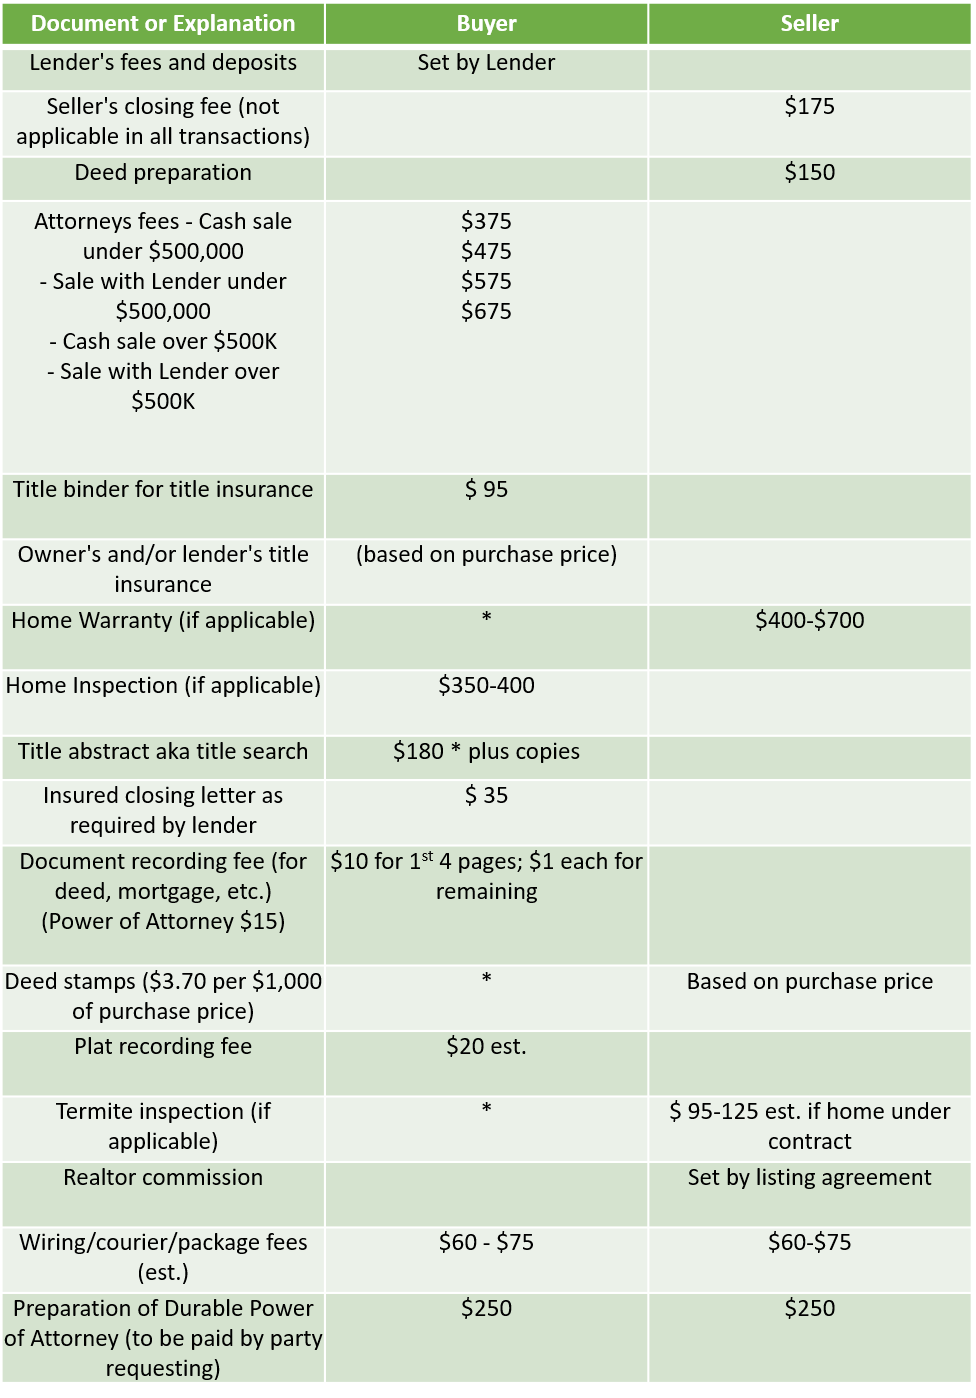 estimated-real-estate-costs.png